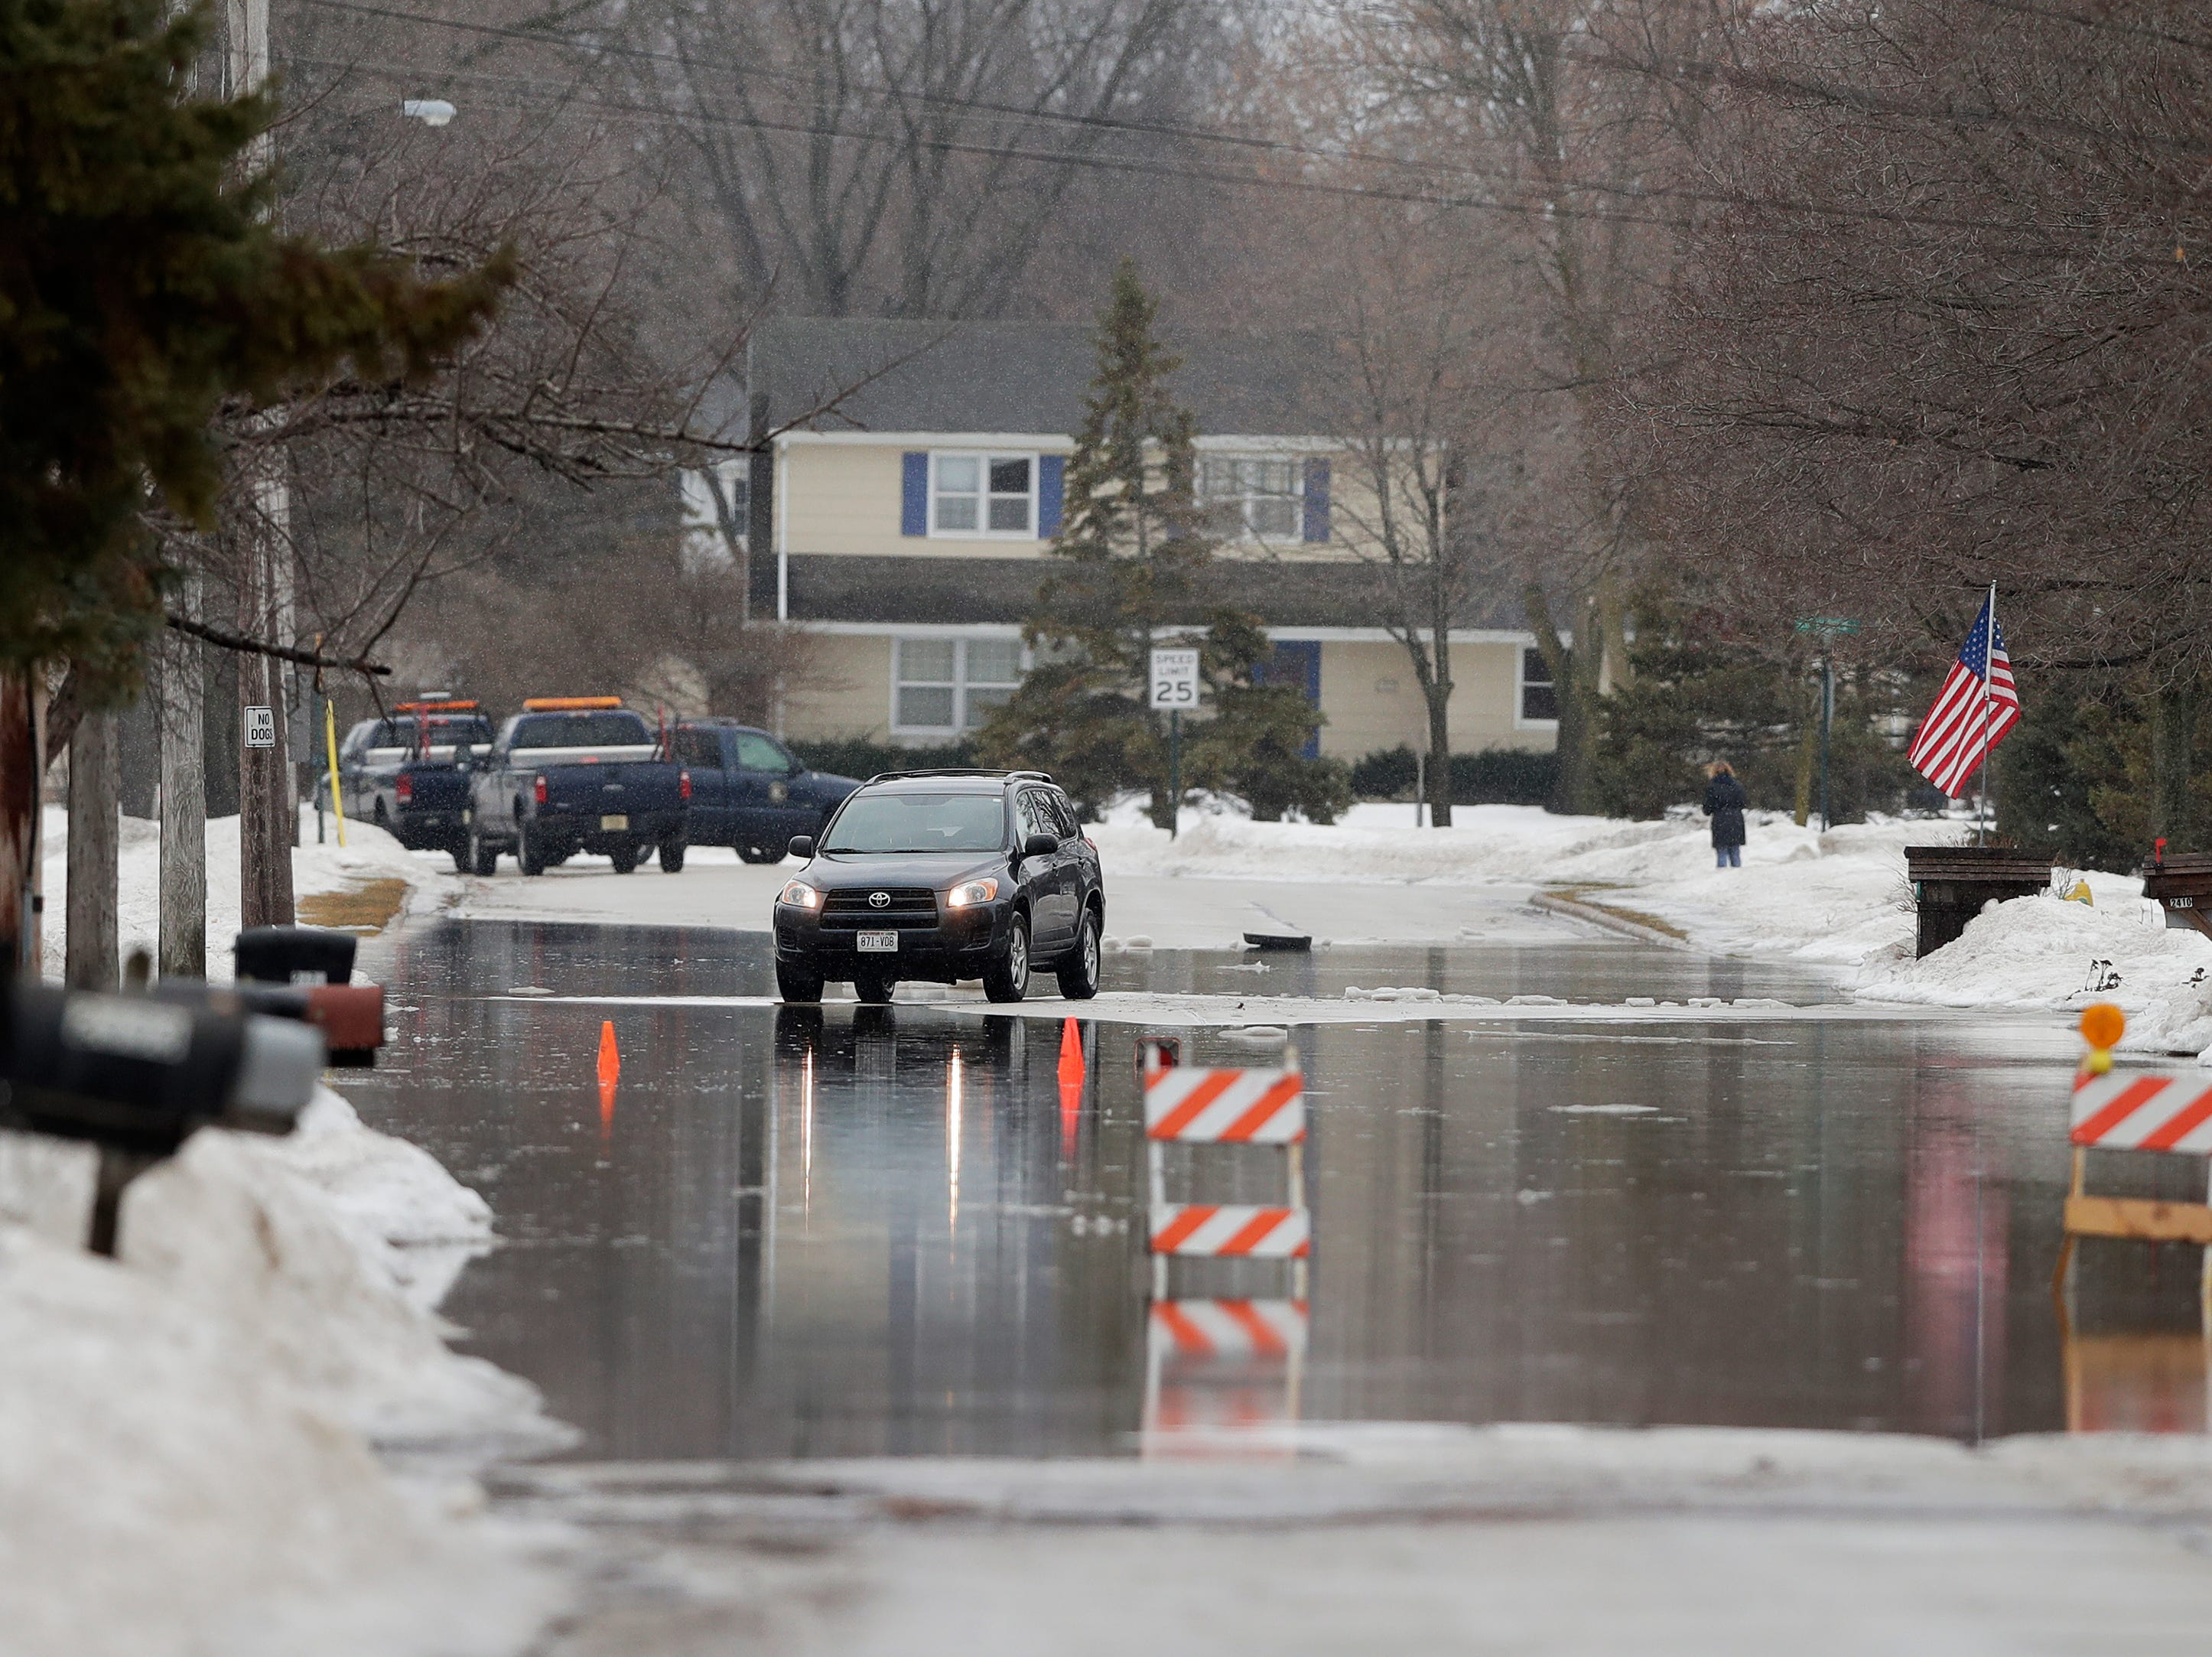 A flooded residential street is shown on Friday, March 15, 2019 in Allouez, Wis.